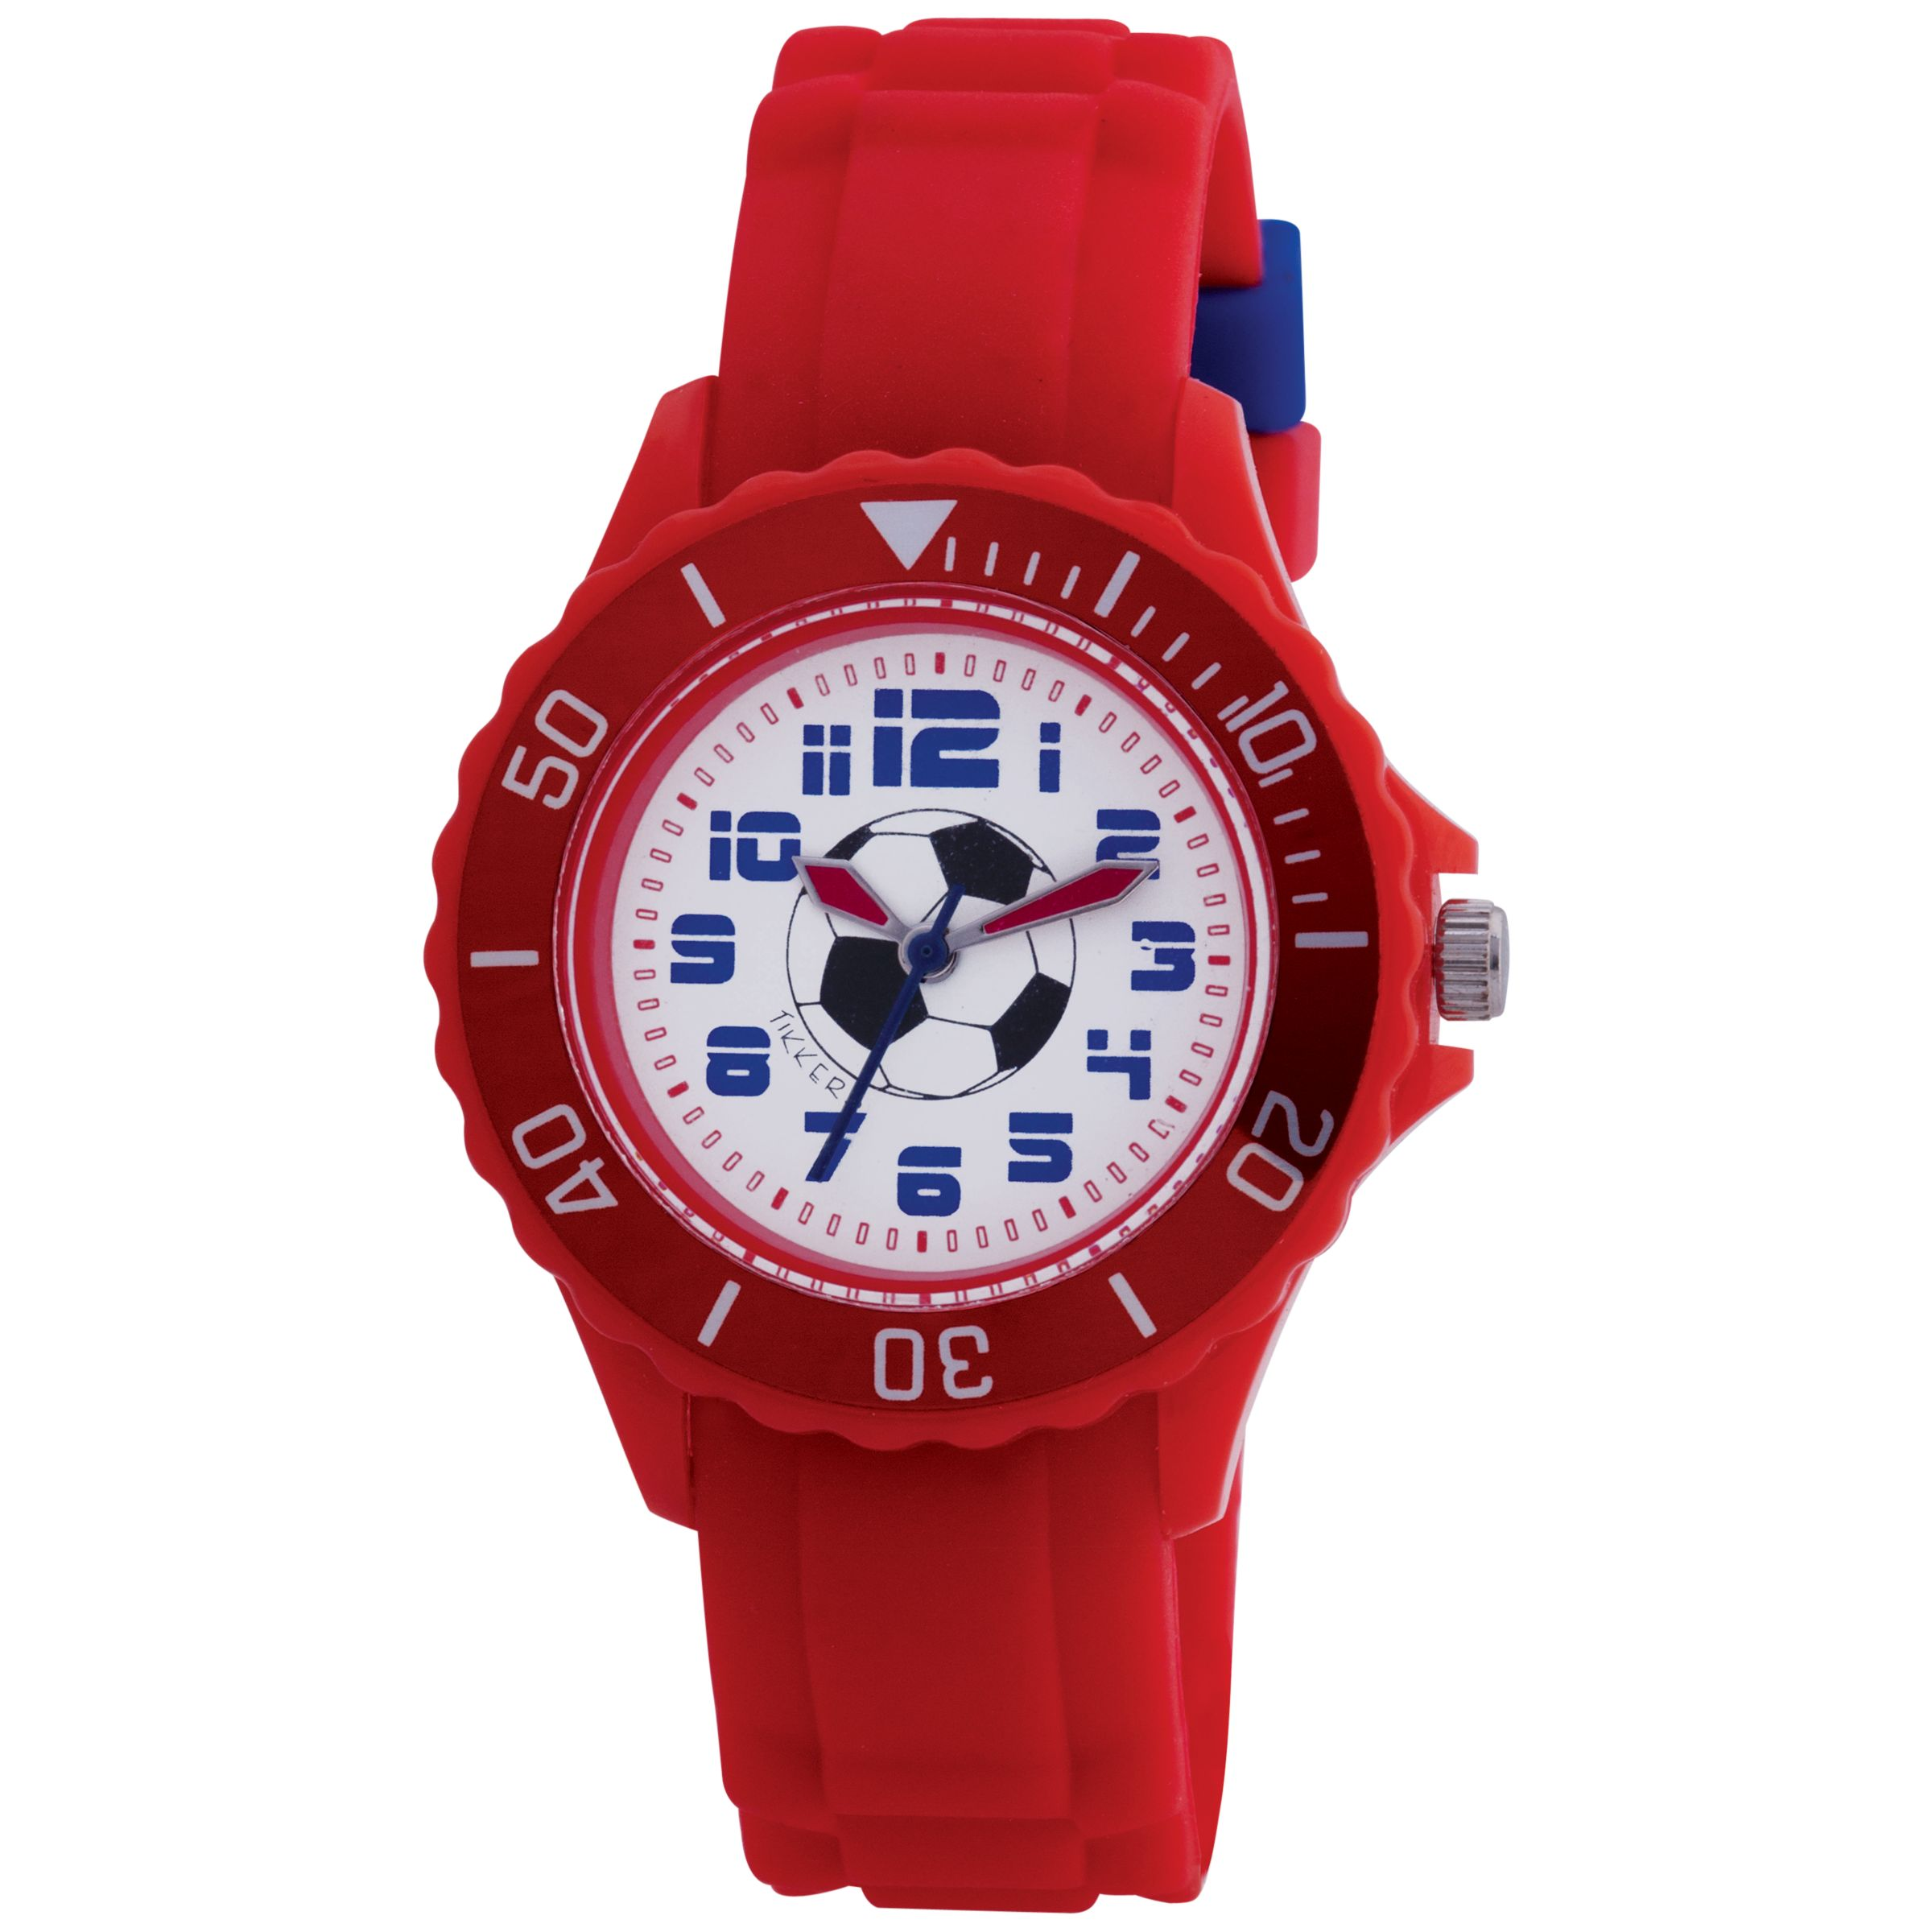 Tikkers TK0028 Kids Football Rubber Strap Watch, Red